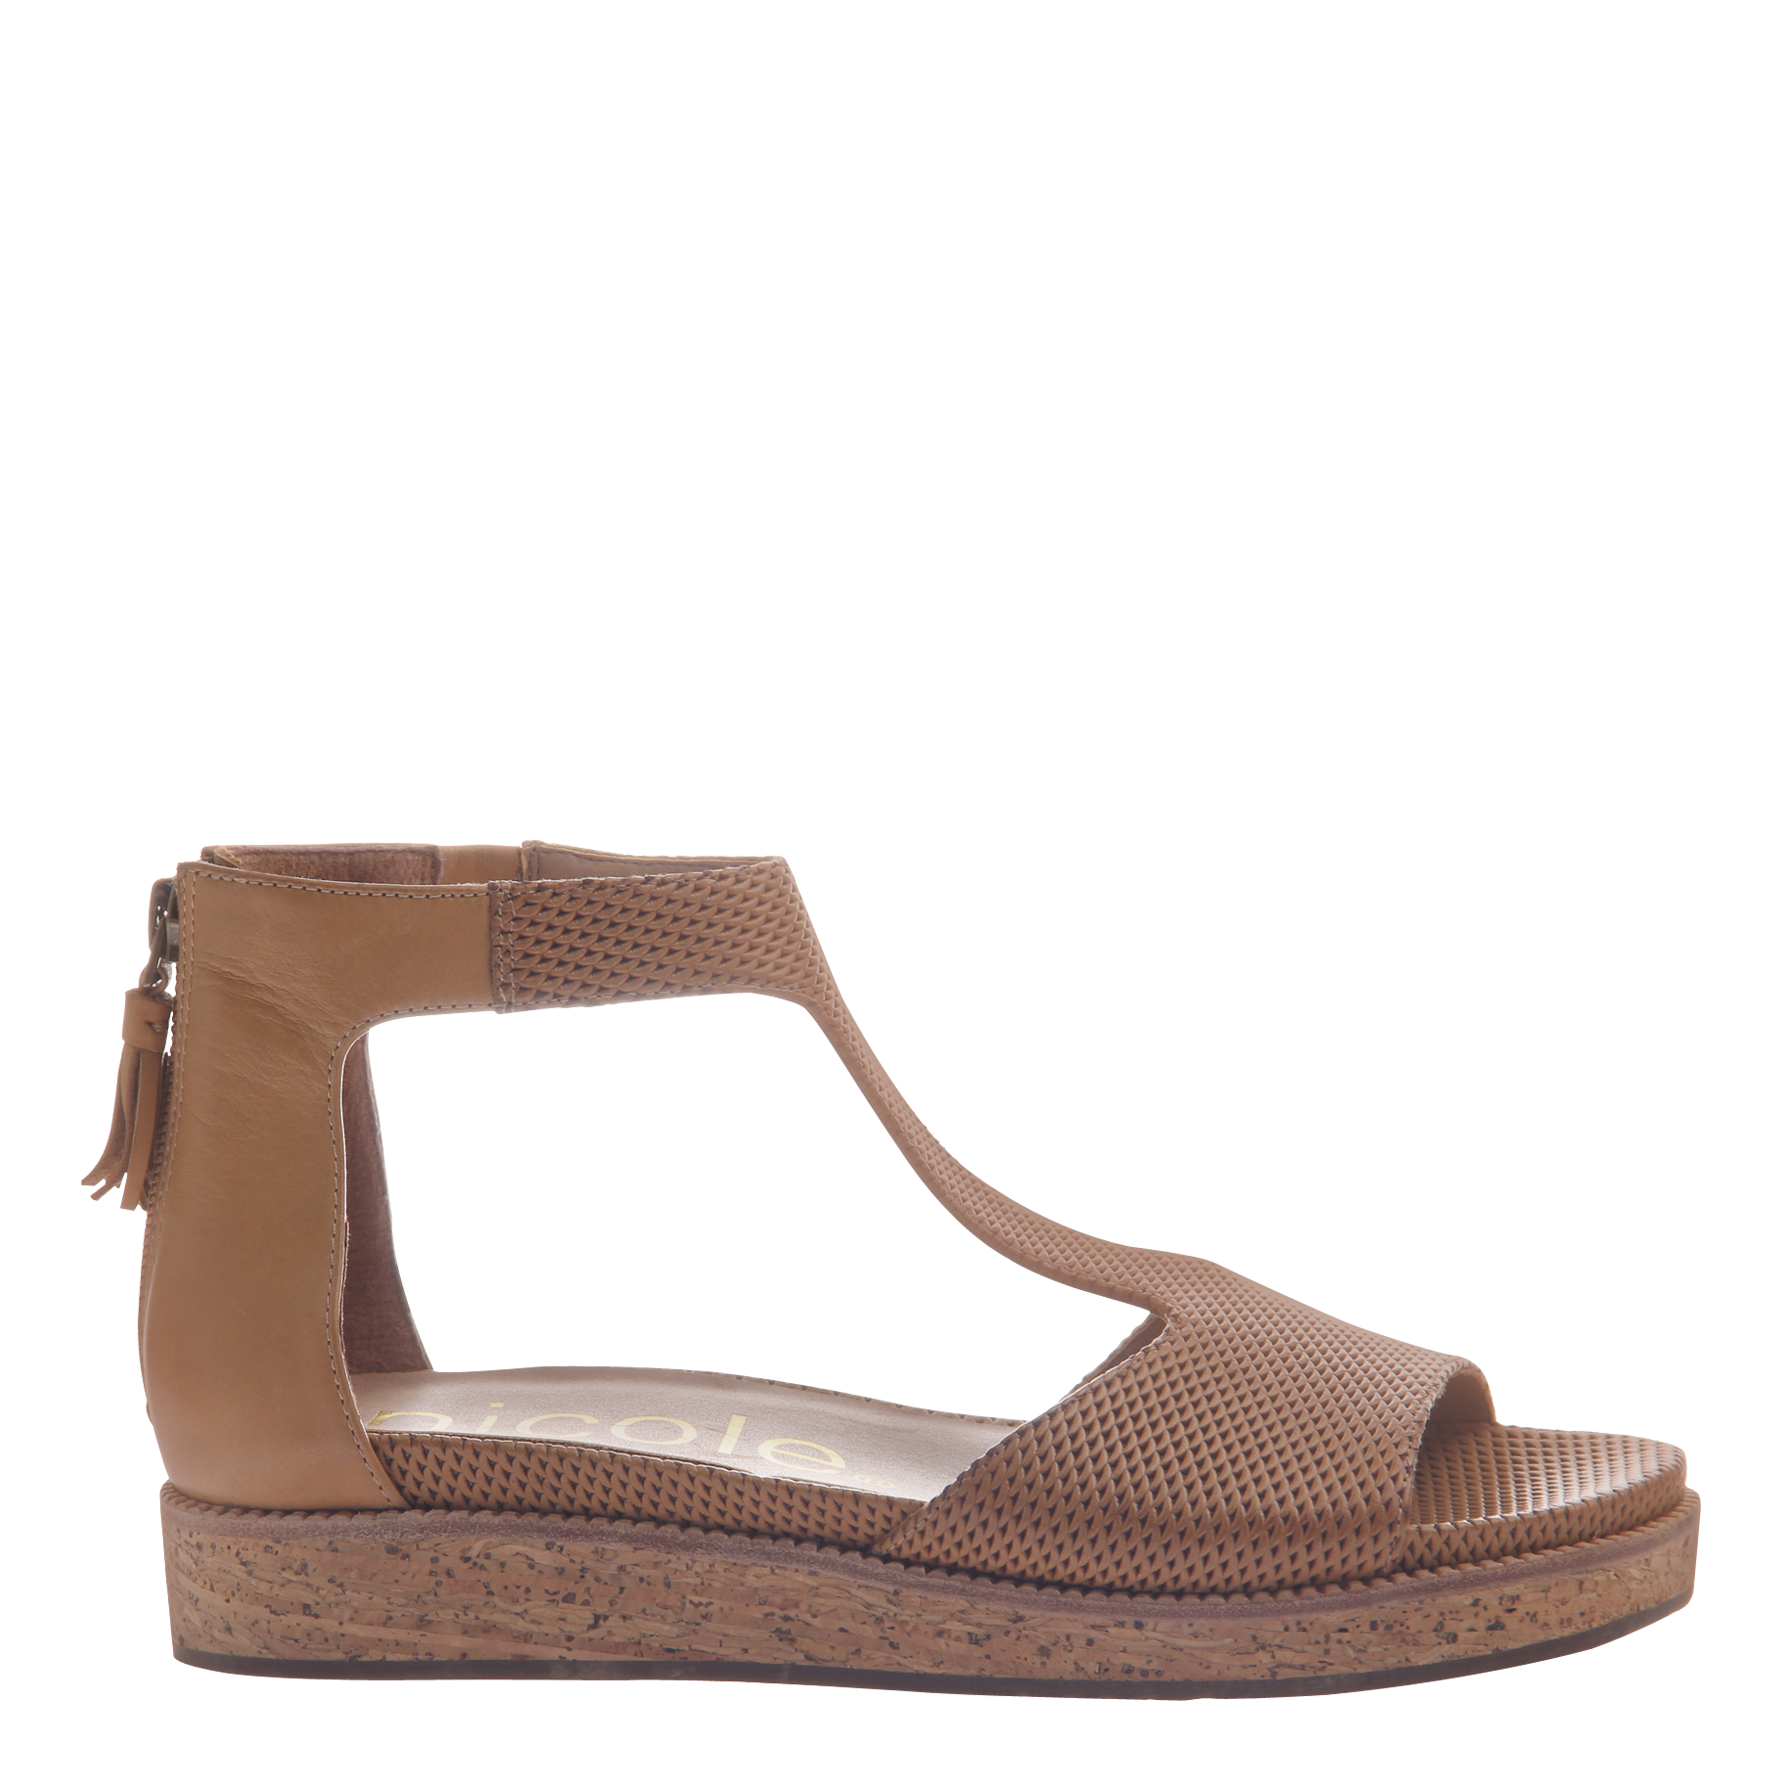 Nicole womens flat sandal lilou in senape side view